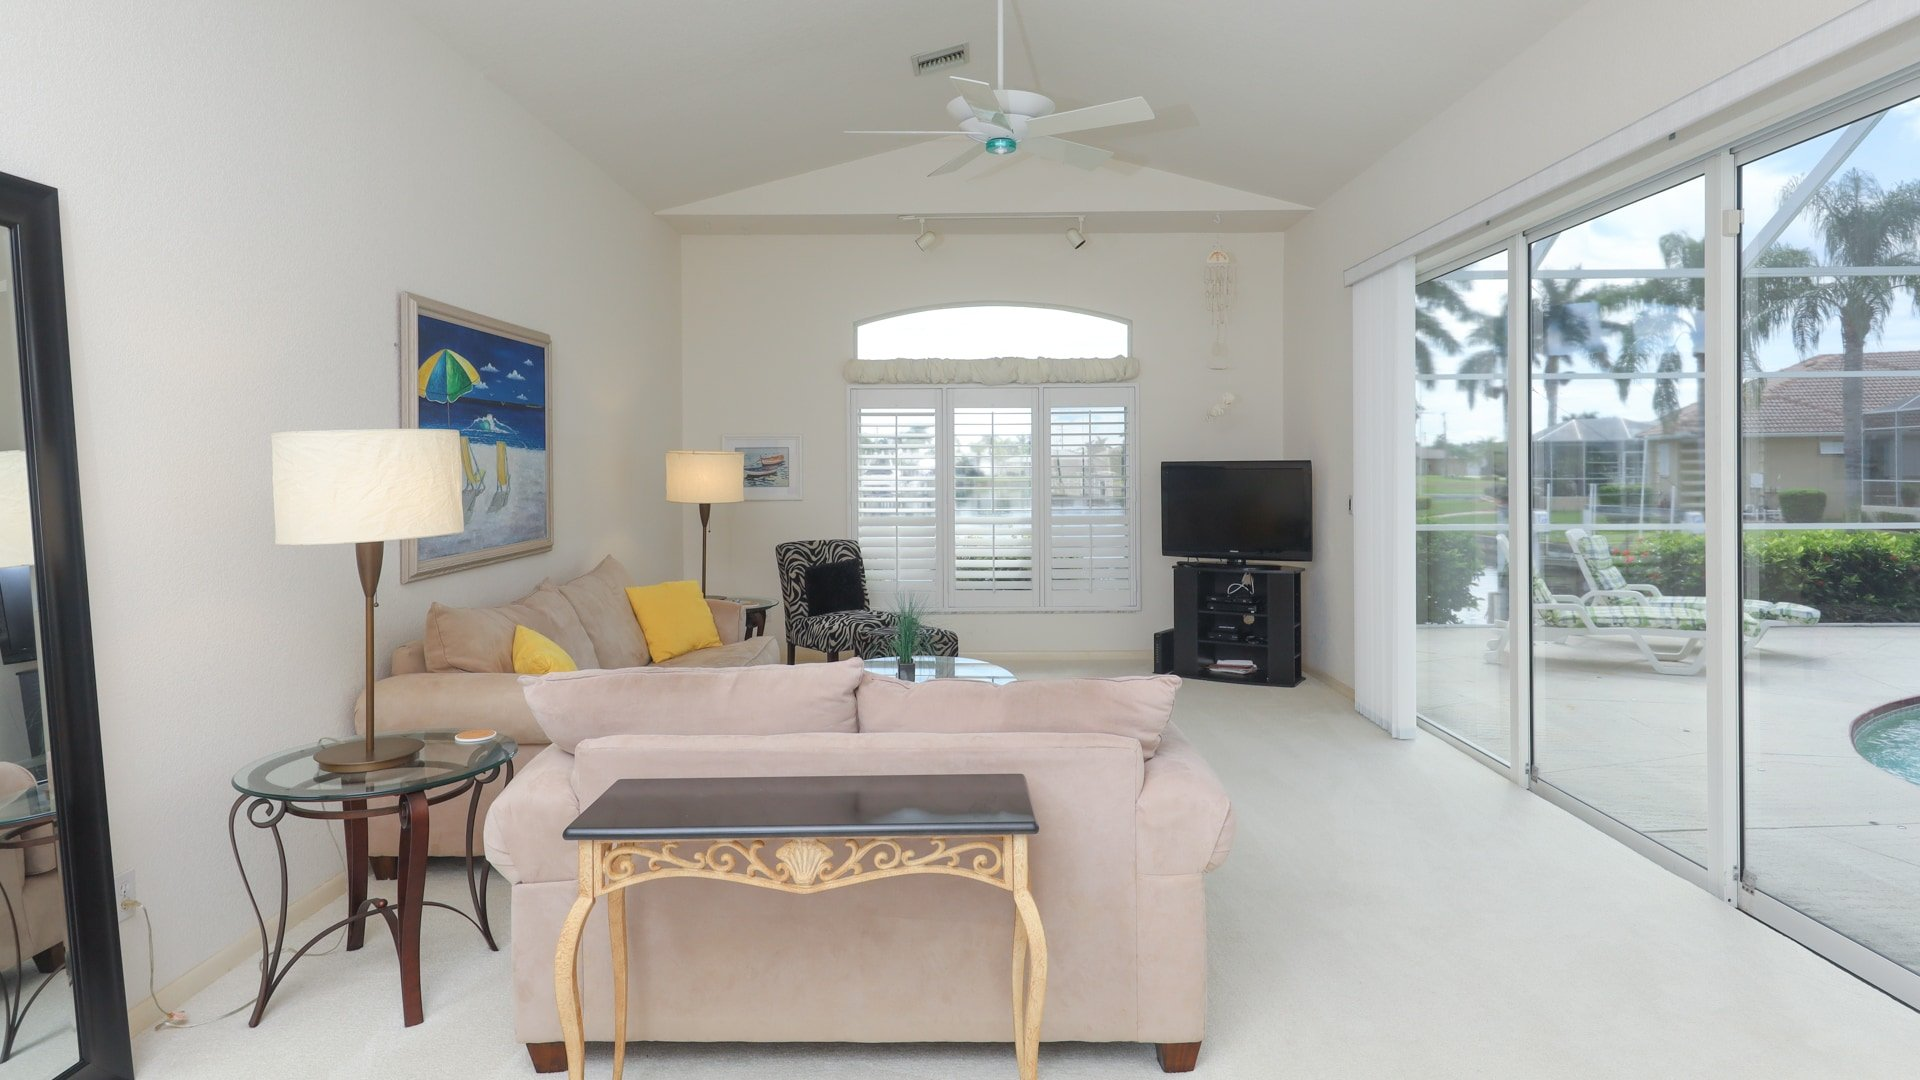 3836 Paola Dr-212763